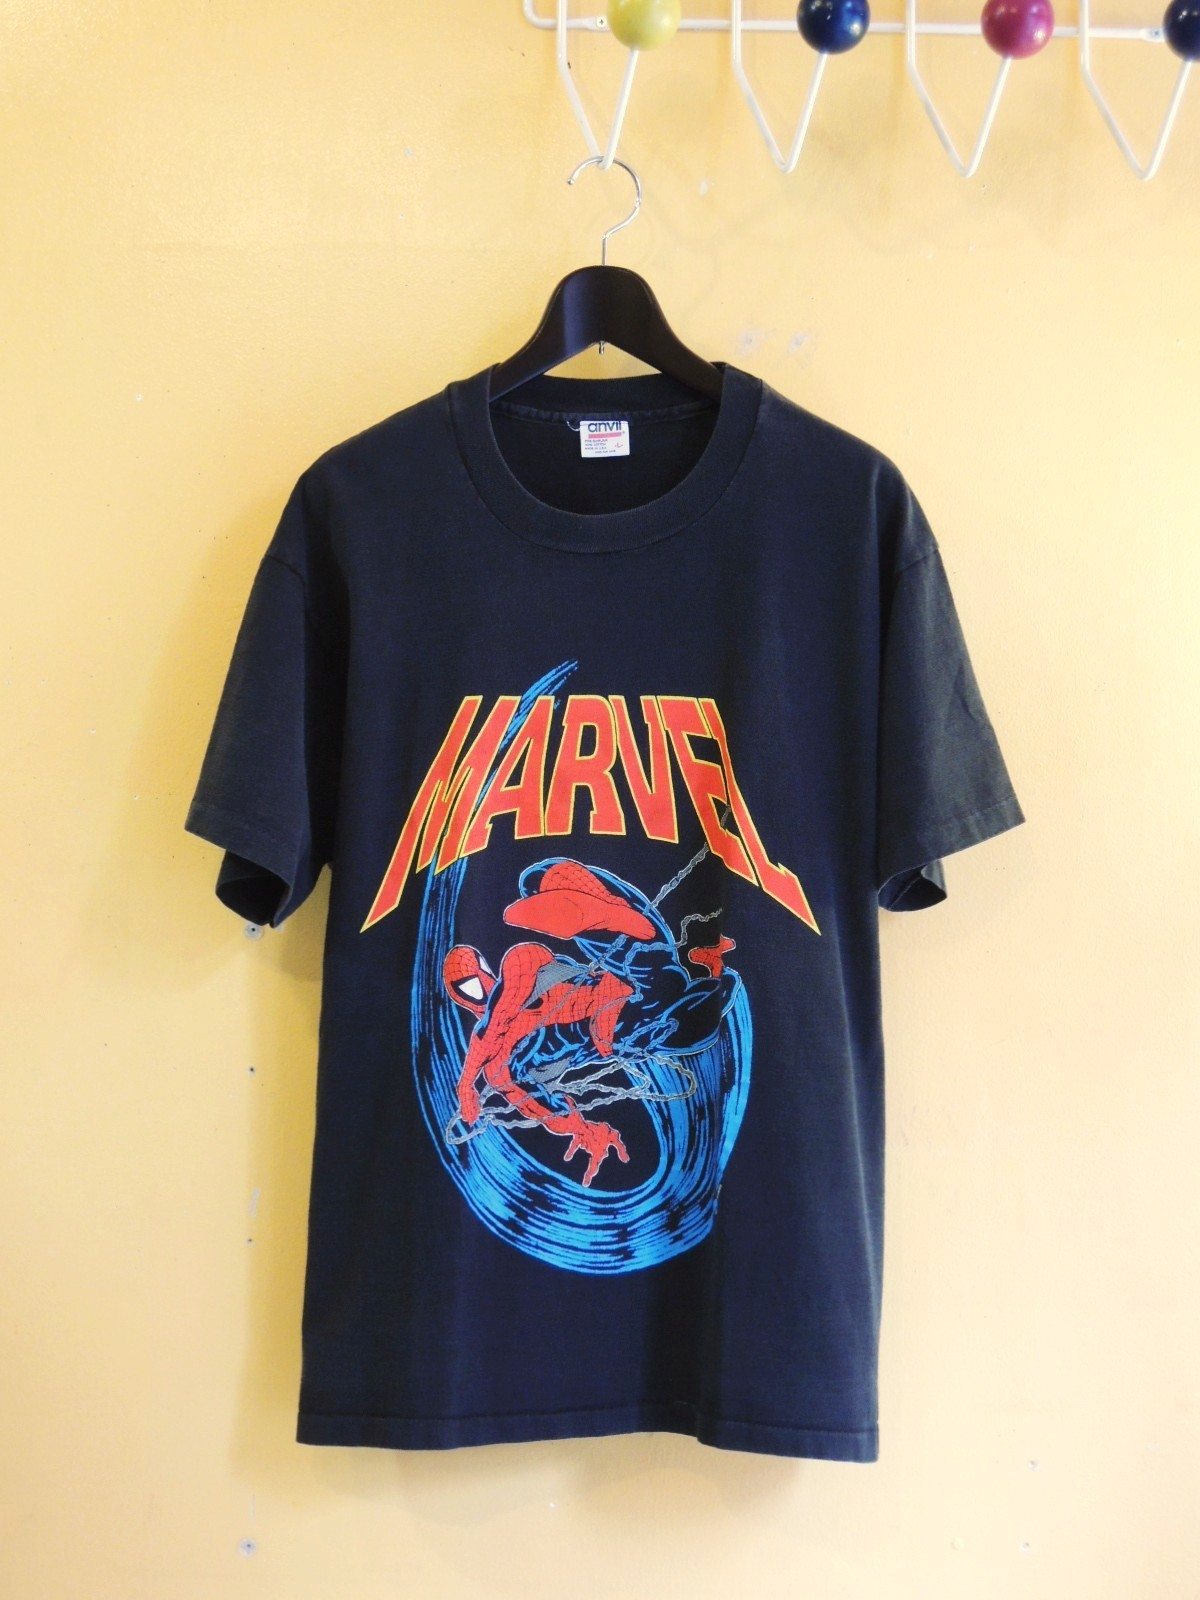 1991spidermantshirts04.JPG